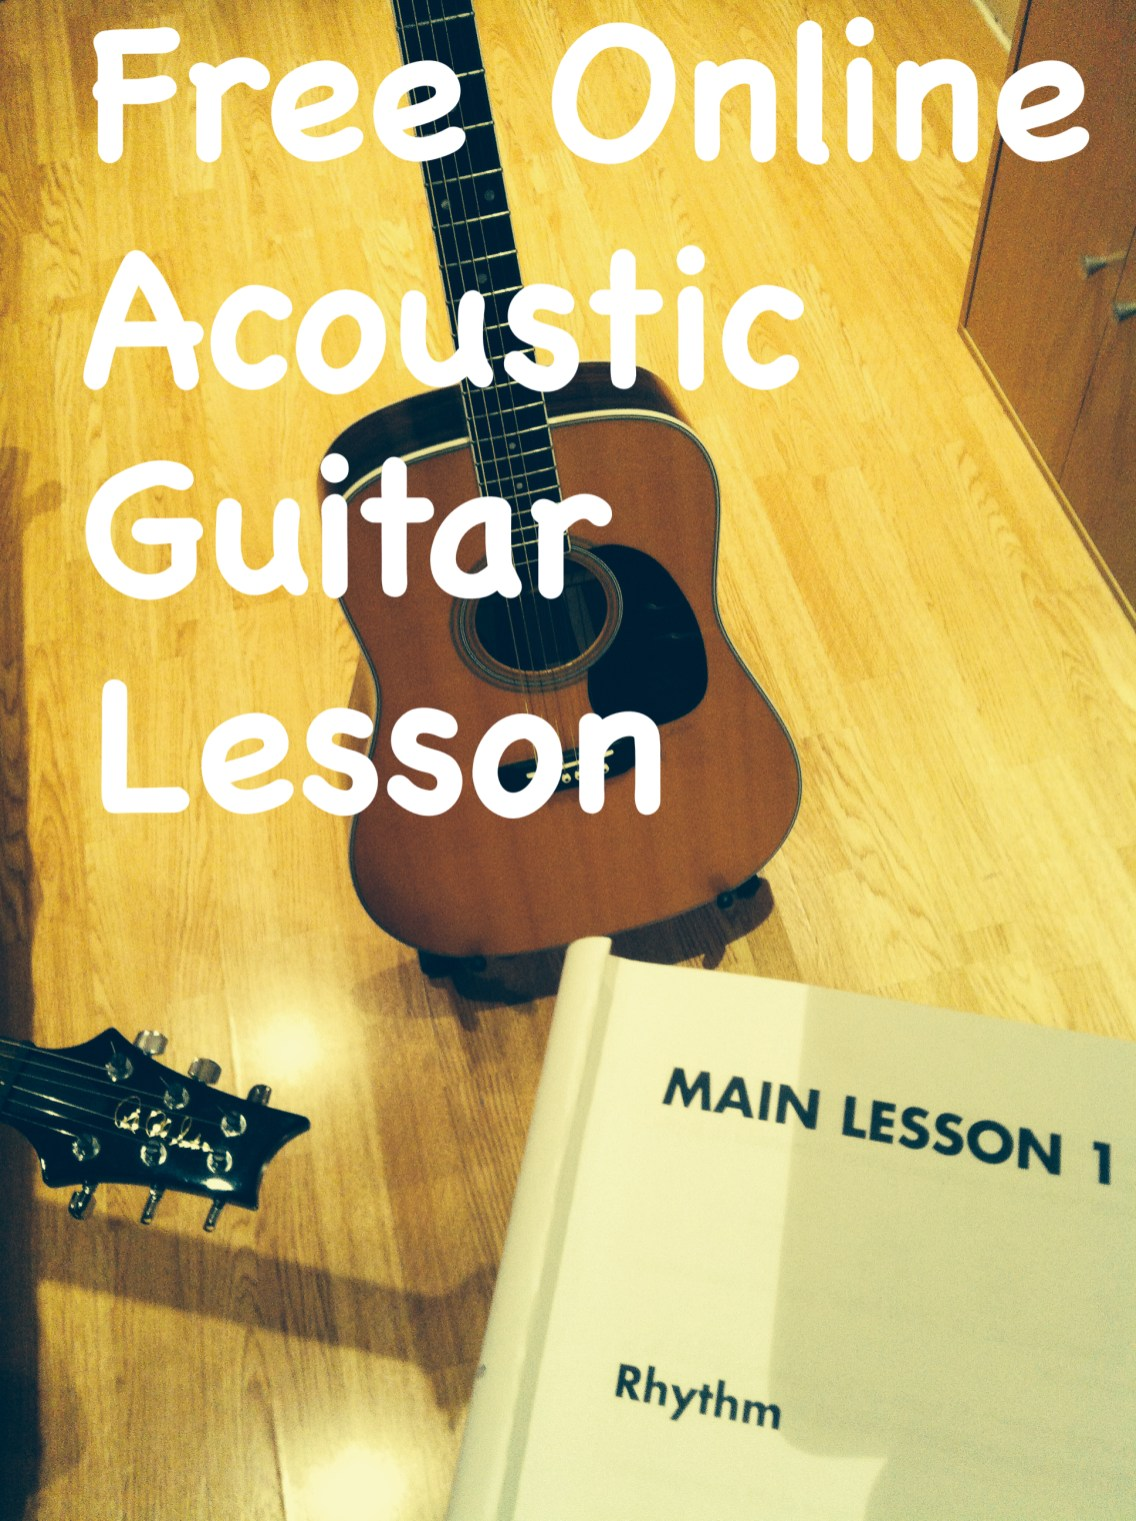 Free online guitar lesson learn how to play e major and e sus4 e major and e sus 4 diagram free online guitar lesson learn how to hexwebz Gallery